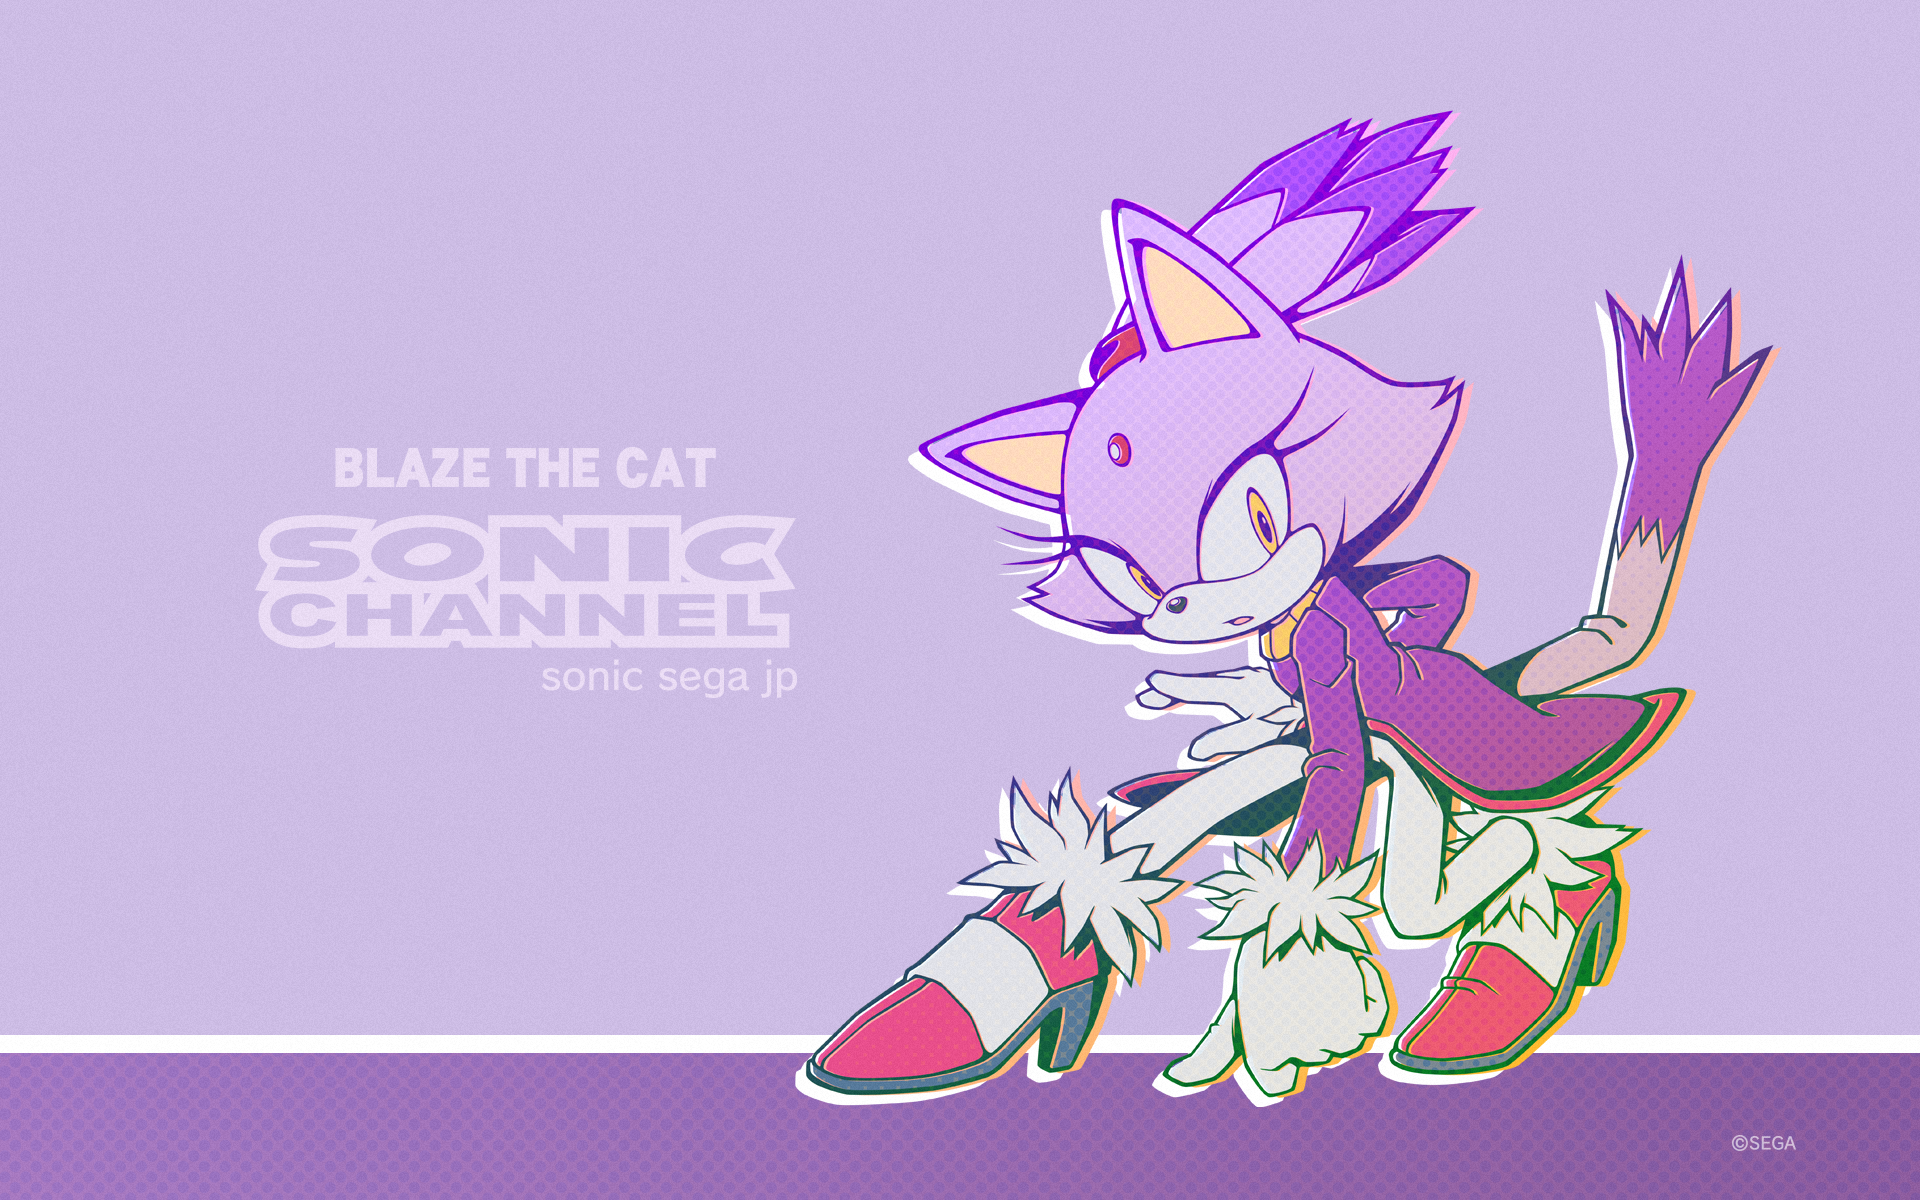 http://sonic.sega.jp/SonicChannel/enjoy/image/wallpaper_192_blaze_12_pc.png